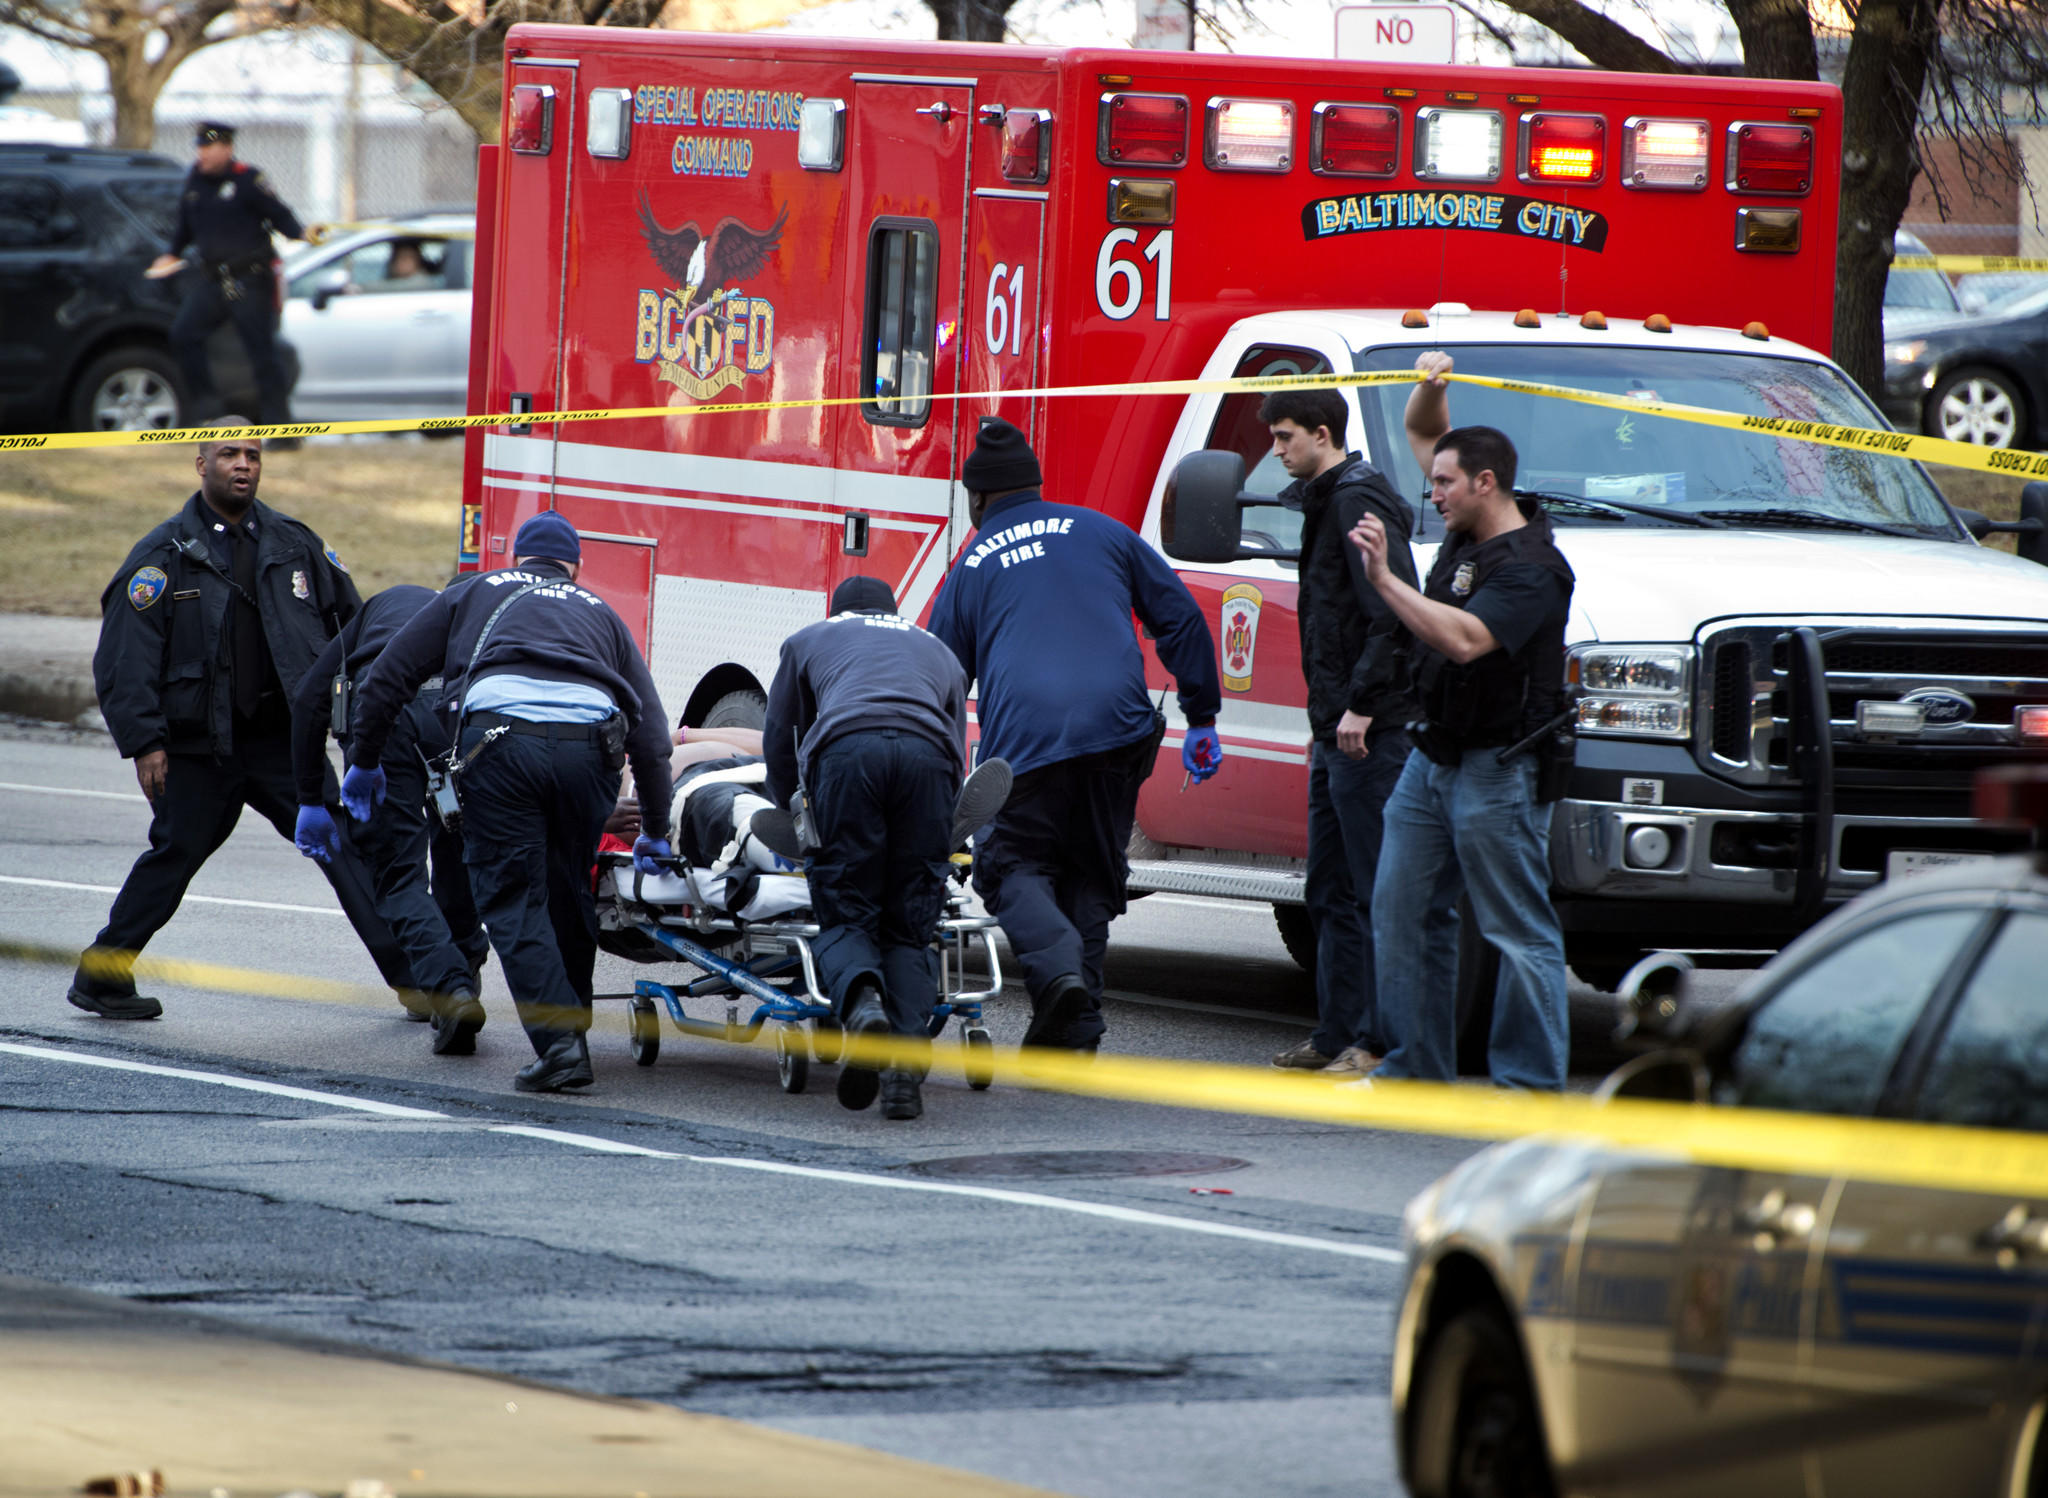 A victim of a shooting is taken to an ambulance on Centre Street. He was under I-83 while awaiting medical attention.